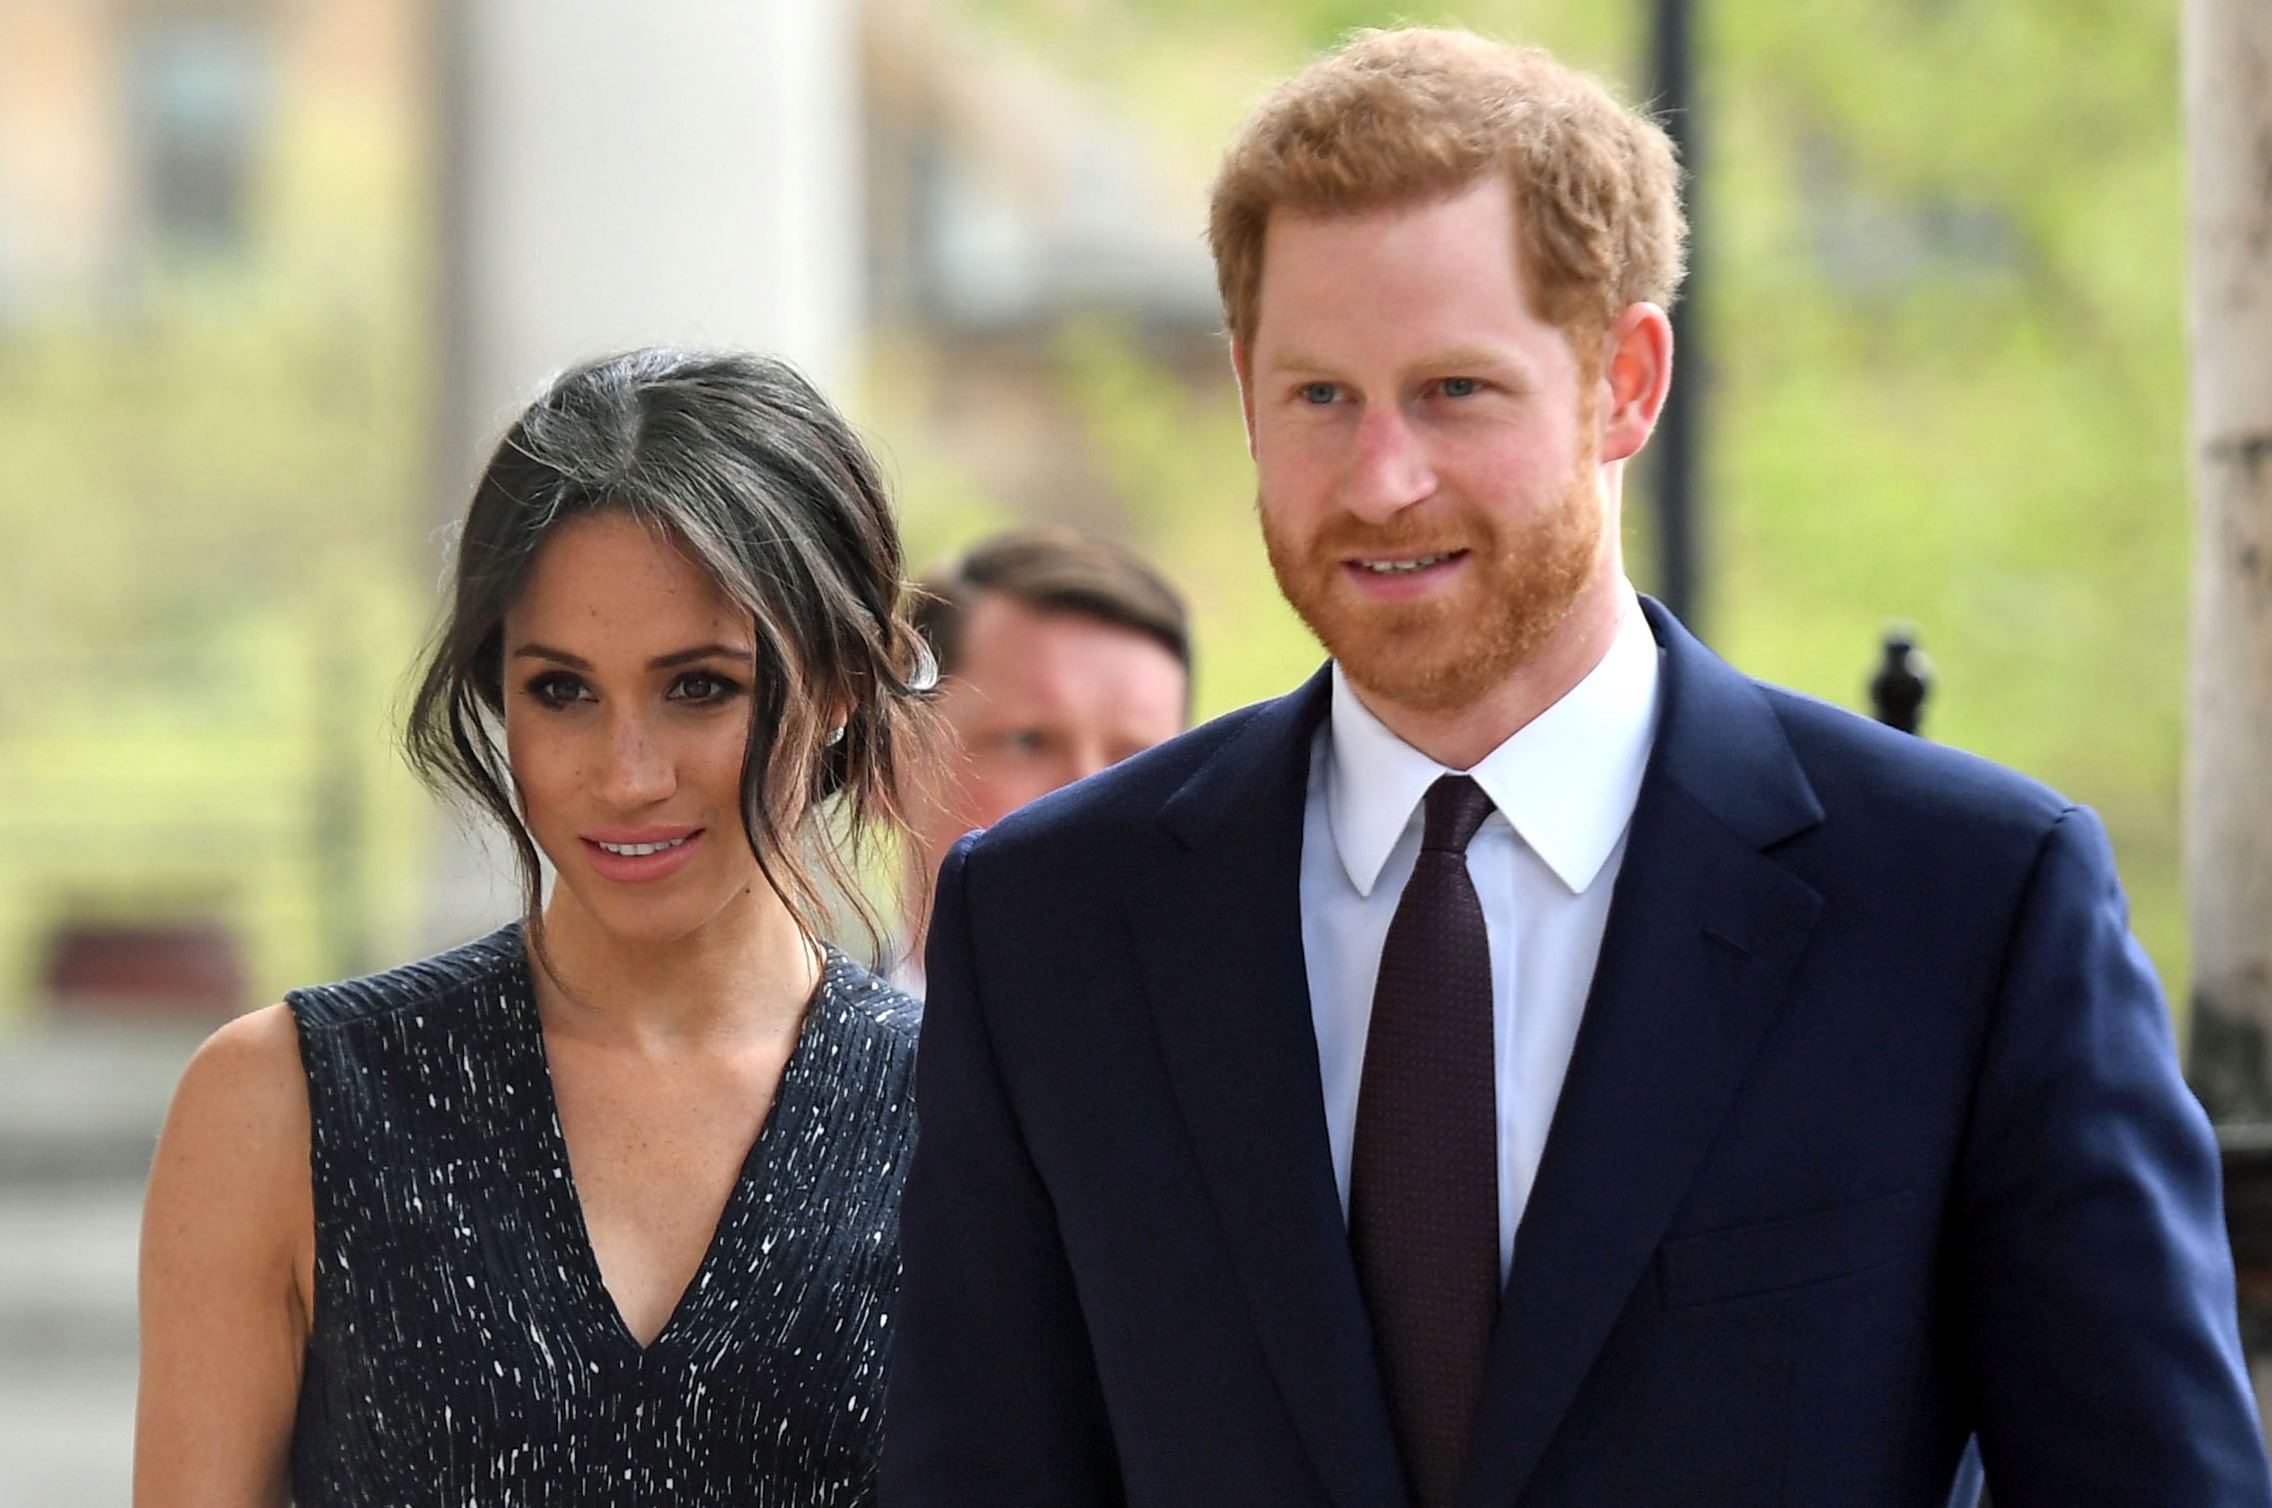 Prince Harry & Meghan Markle Sue Photographer Over Archie Pic